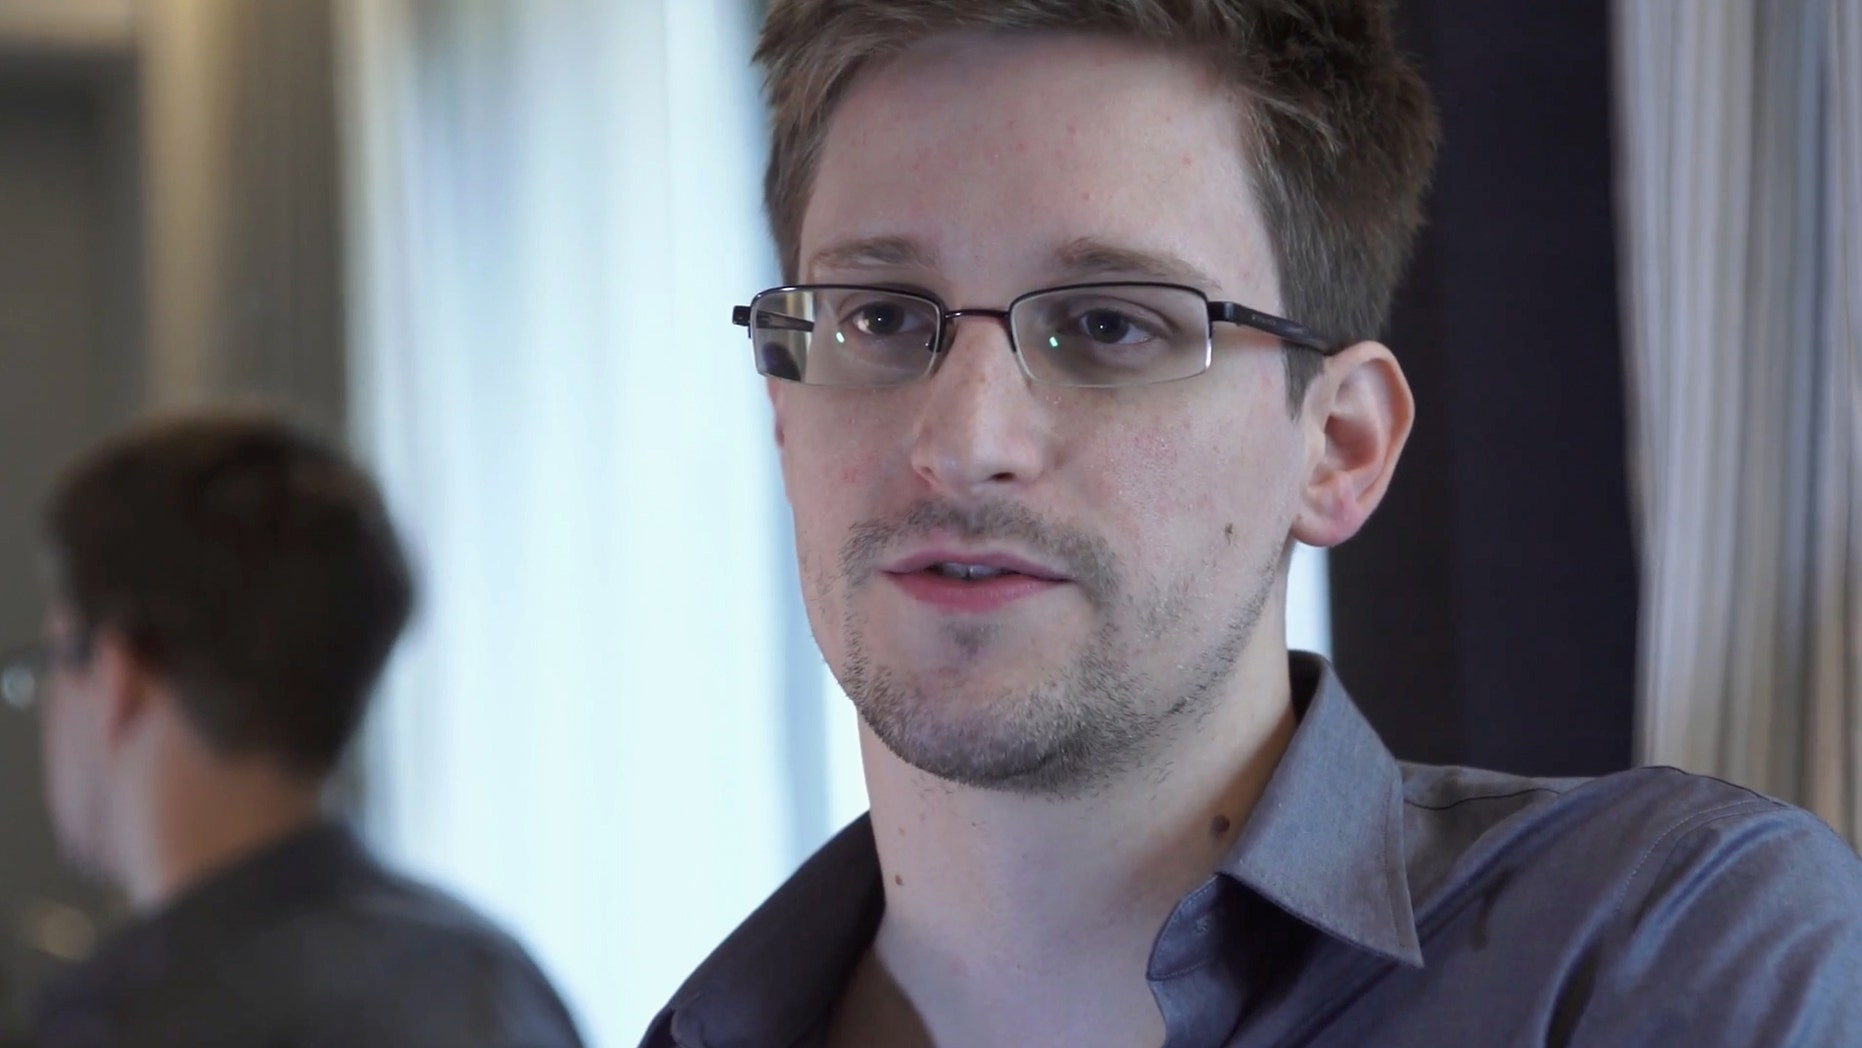 """FILE - This June 9, 2013 file photo provided by The Guardian Newspaper in London shows National Security Agency leaker Edward Snowden, in Hong Kong. Snowden wrote in """"an open letter to the Brazilian people"""" published early Tuesday, Dec. 17, 2013 by the respected Folha de S. Paulo newspaper that he would be willing to help Brazil's government investigate U.S. spying on its soil, but that he could do so only if granted political asylum. (AP Photo/The Guardian, Glenn Greenwald and Laura Poitras, File)"""